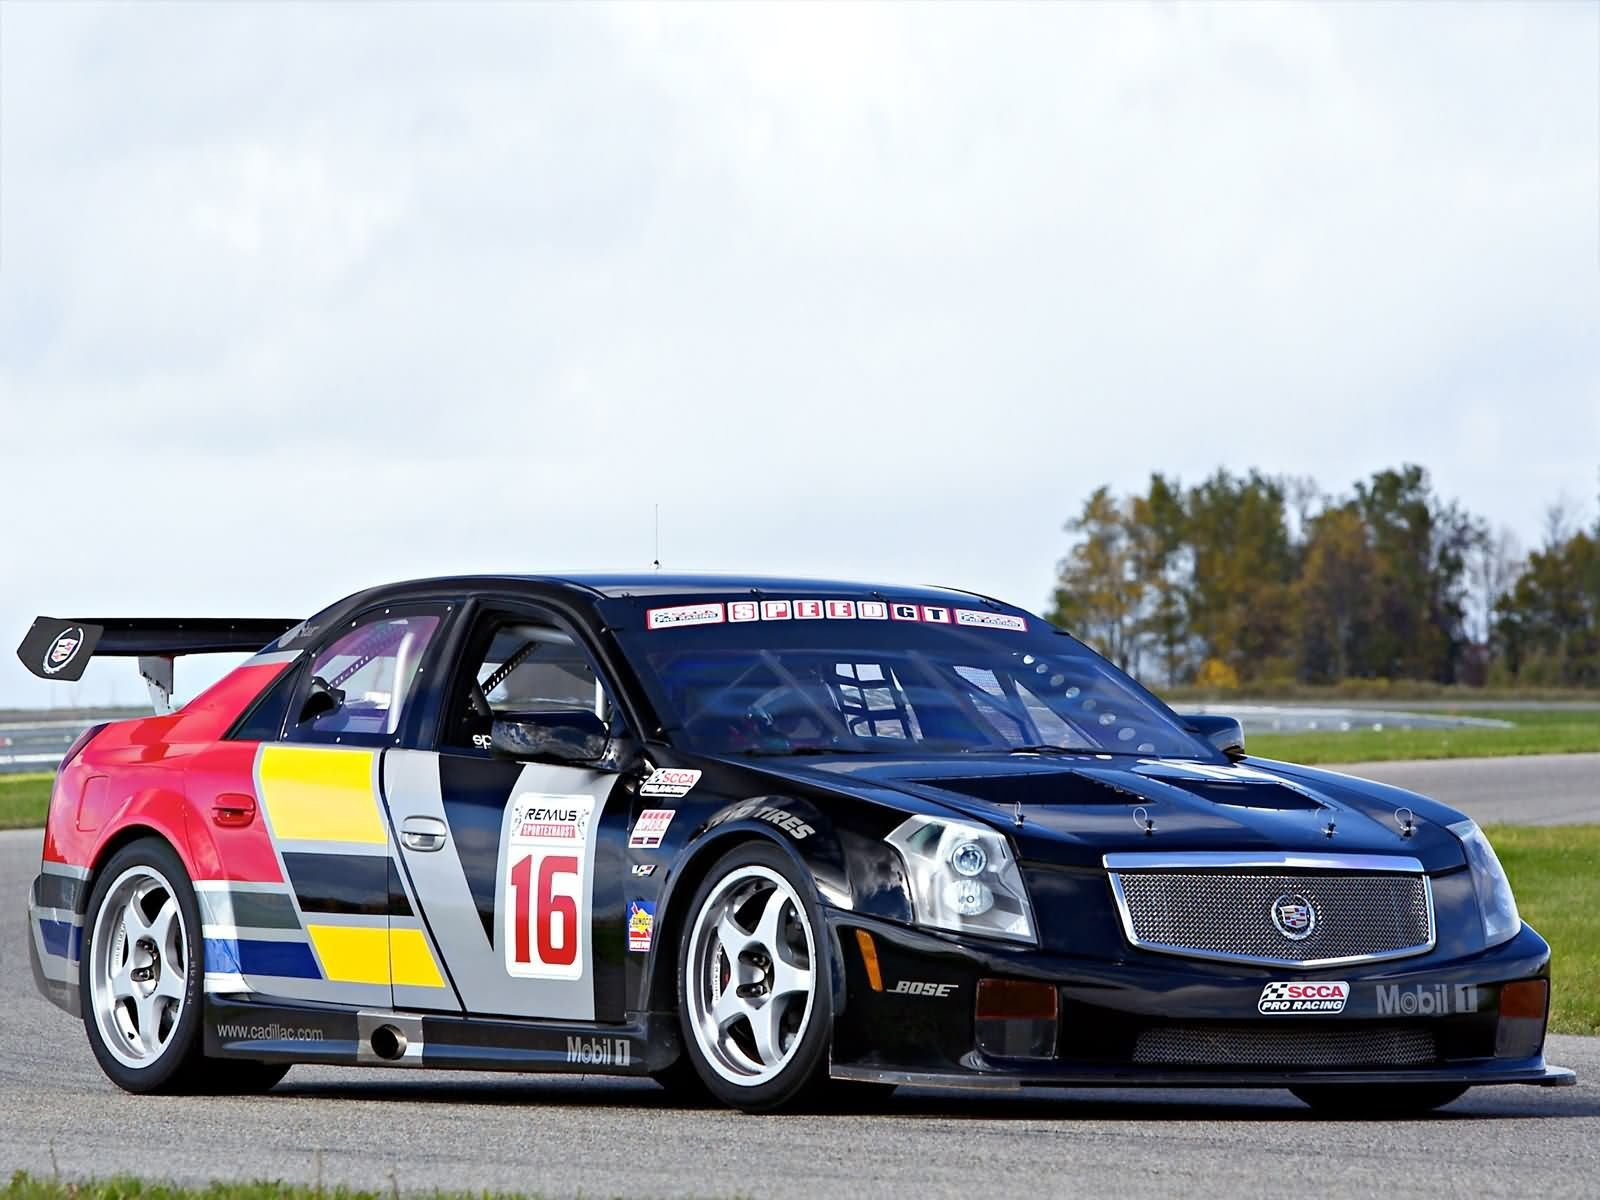 Latest Cadillac Cts V Race Car Photos Photogallery With 14 Pics Free Download Original 1024 x 768